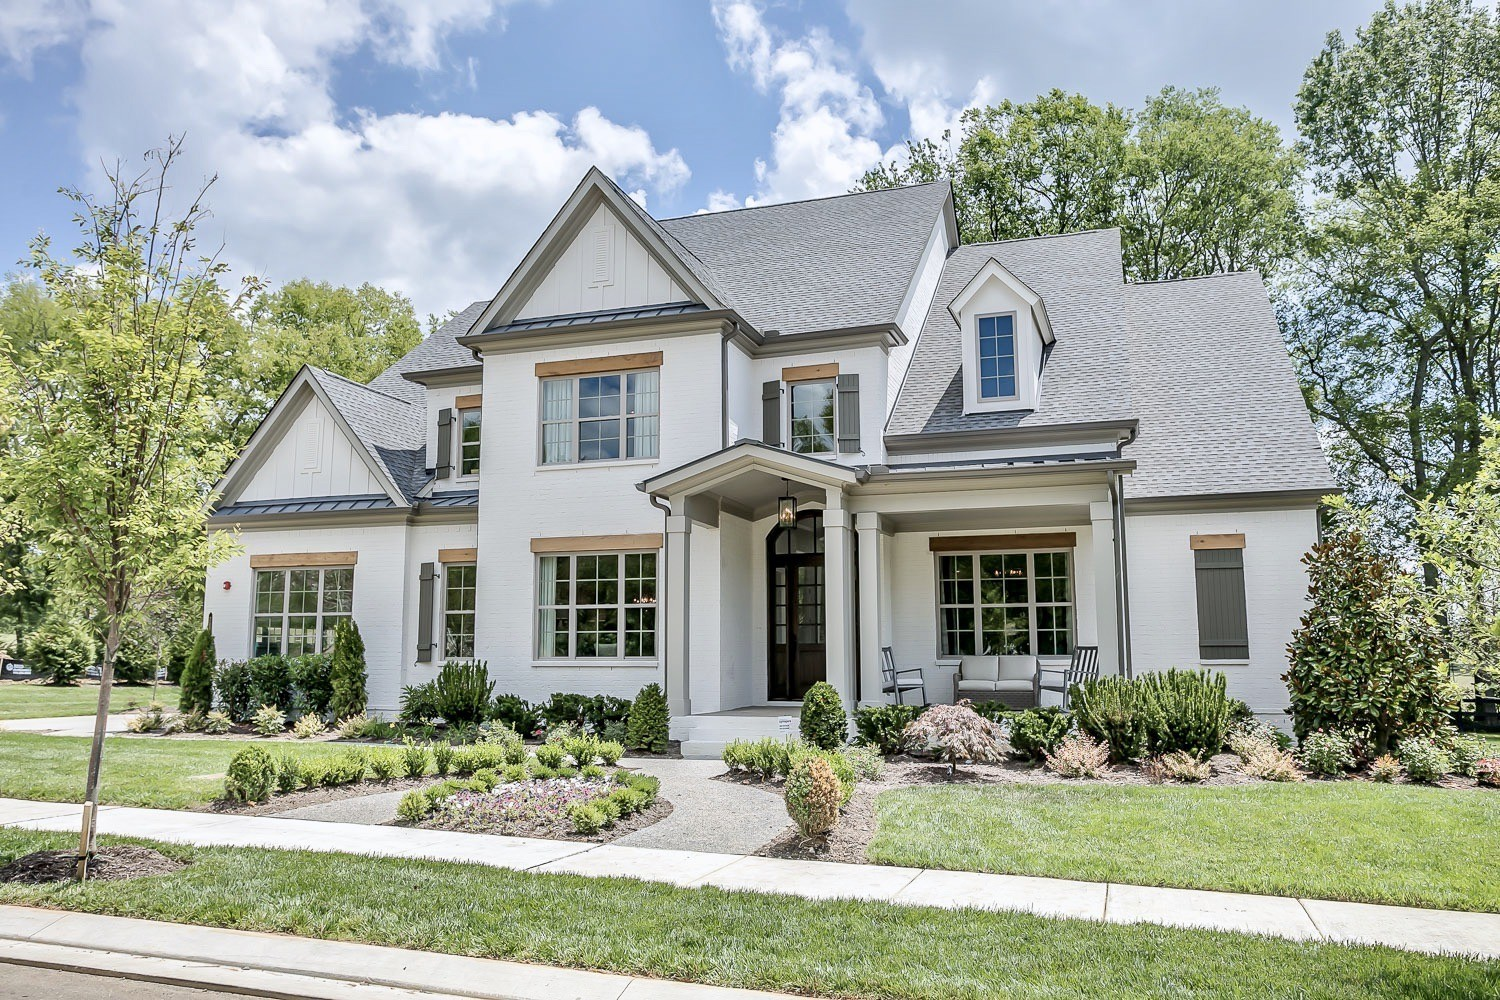 LAST CHANCE TO OWN NEW TURNBERRY HOME IN BISHOPS GATE!! Same Plan as Model! Private 1/2 Acre w/ ROOM FOR A POOL! Tall Crawl Space w/ 11x11 Workshop Area. Magnificent 5BR Design. ENTERTAINER'S DELIGHT w/ Back Covered Deck, Incredible Chef's Kitchen w/ Butler Serving Area / Island / Walk-In Pantry /Large Bar. Main Level Study or Perfect Room for Baby Grand Piano, Owner's & Guest Retreat on Main w/ 3 Large BR's UP and Full En Suite Baths for ALL BR's! HURRY- LIMITED TIME to CUSTOMIZE SELECTIONS!!